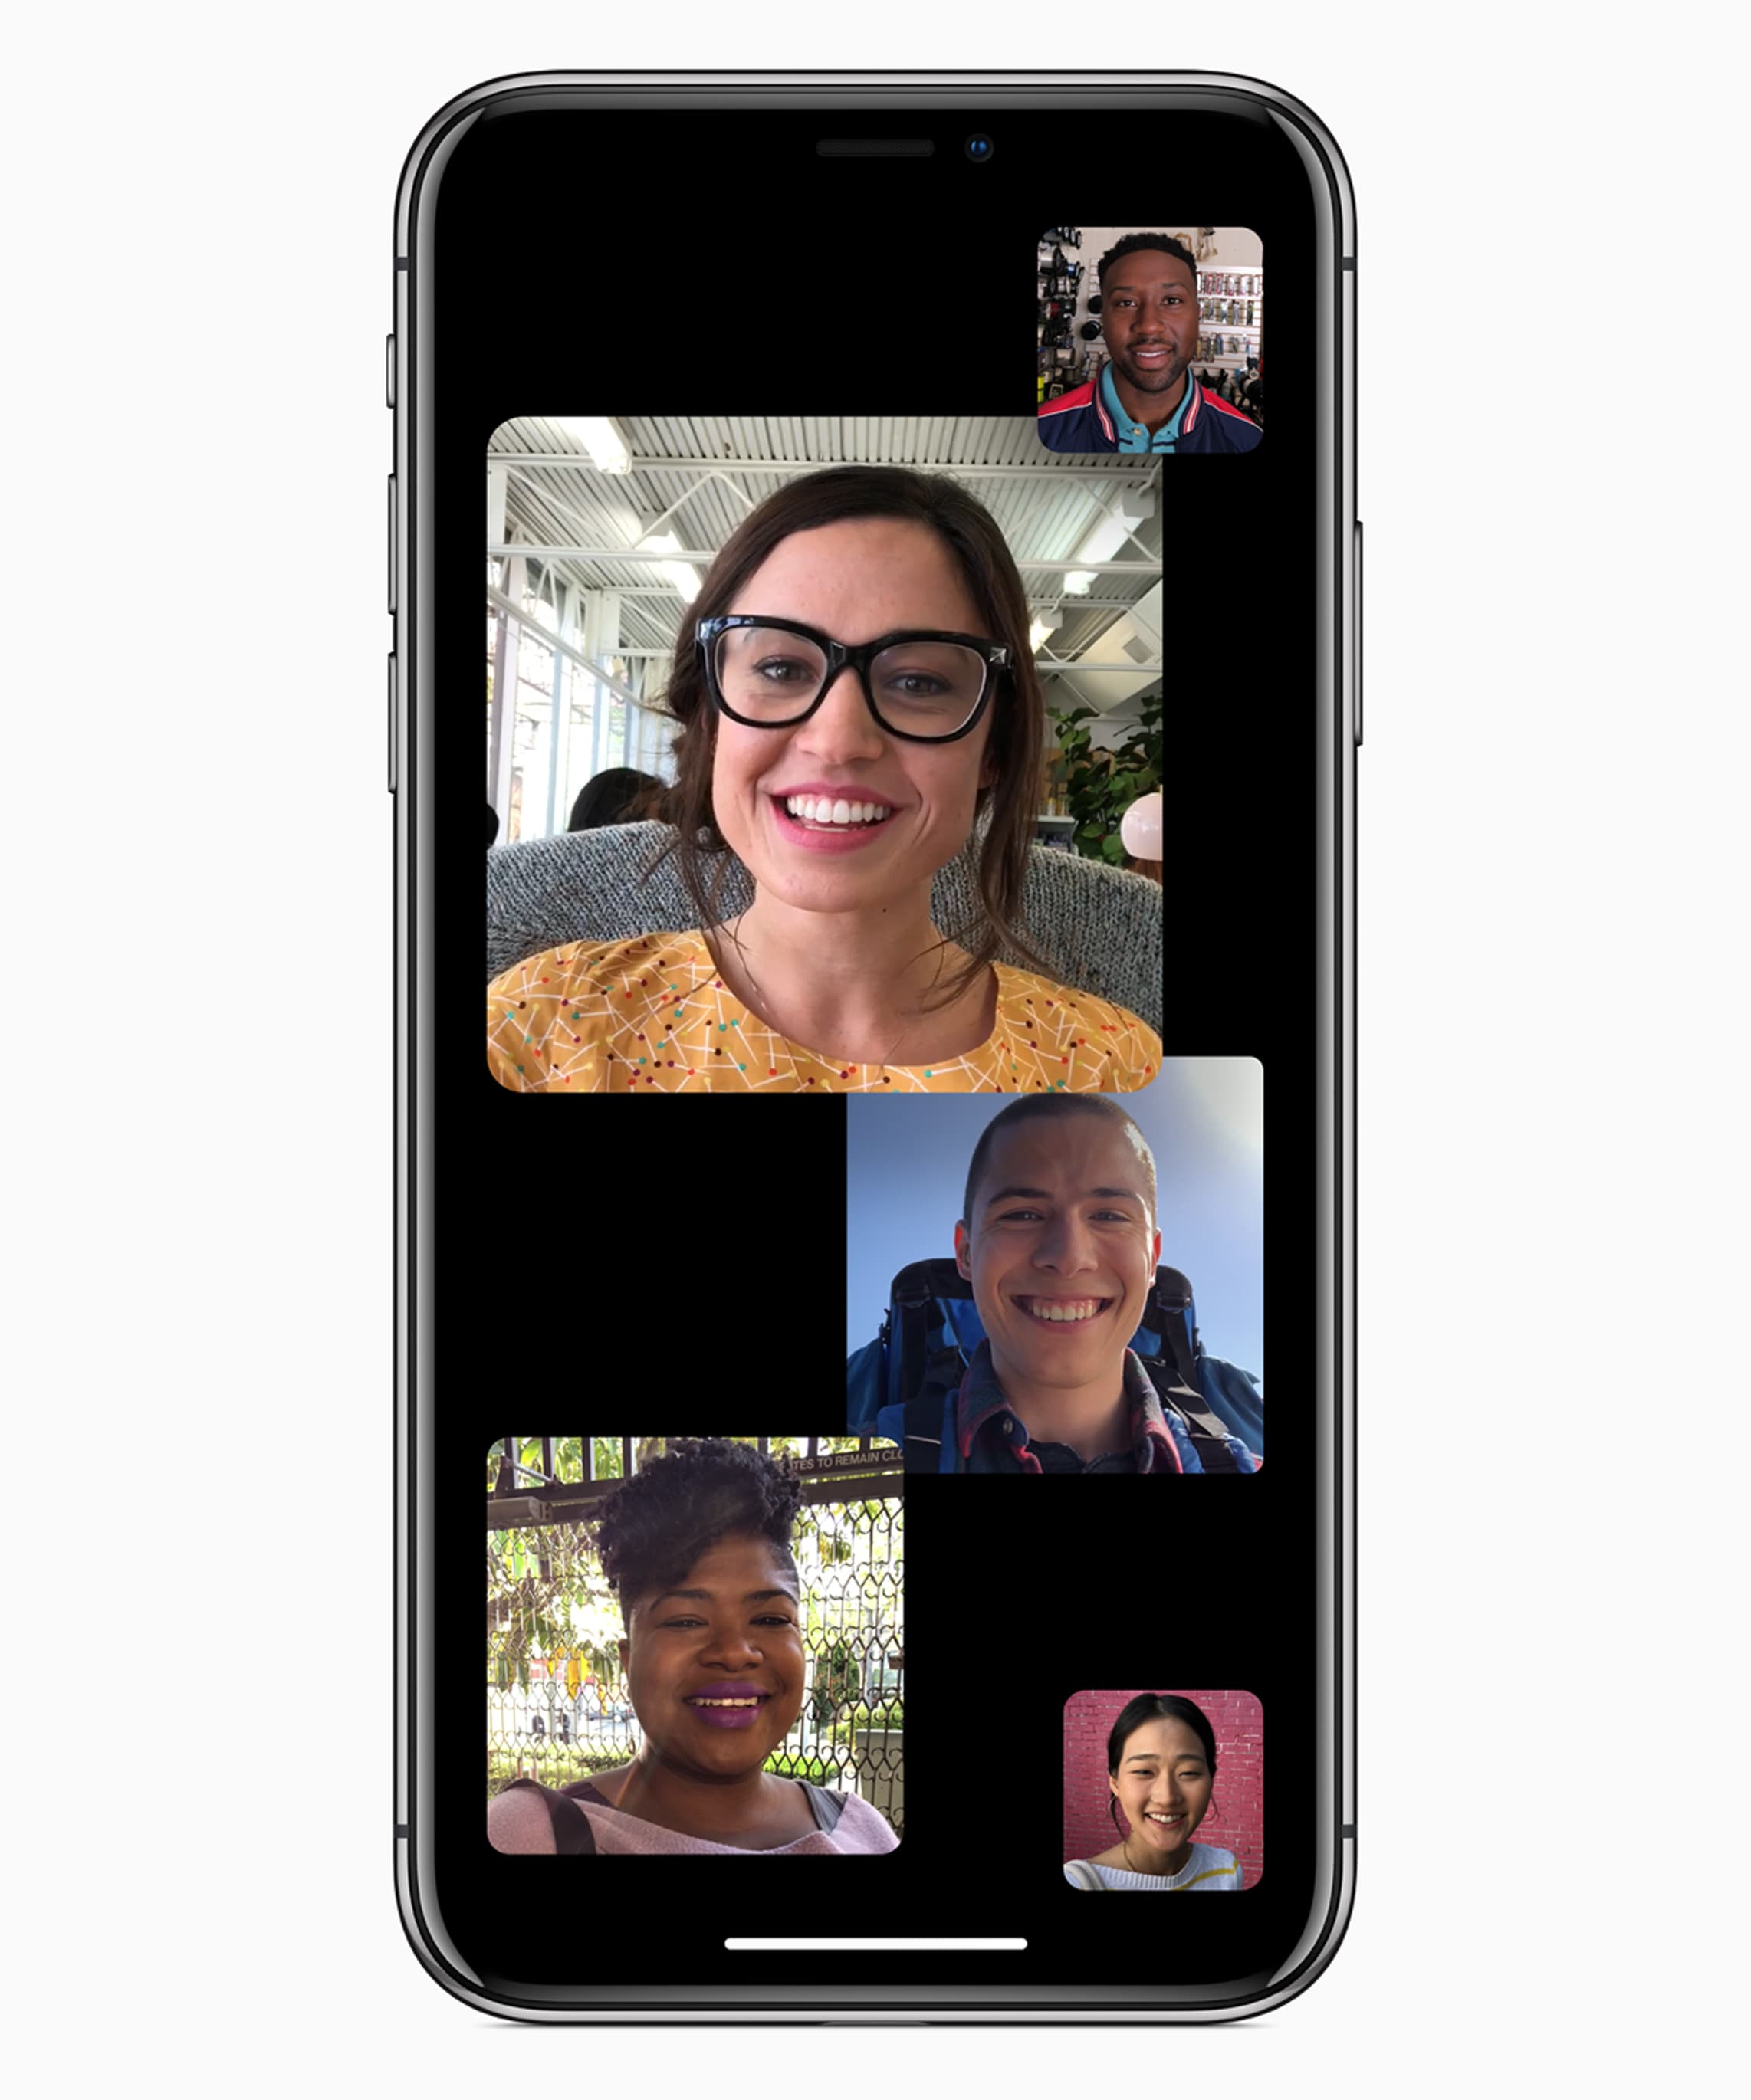 iOS 12 launches with Screen Time data features, speed